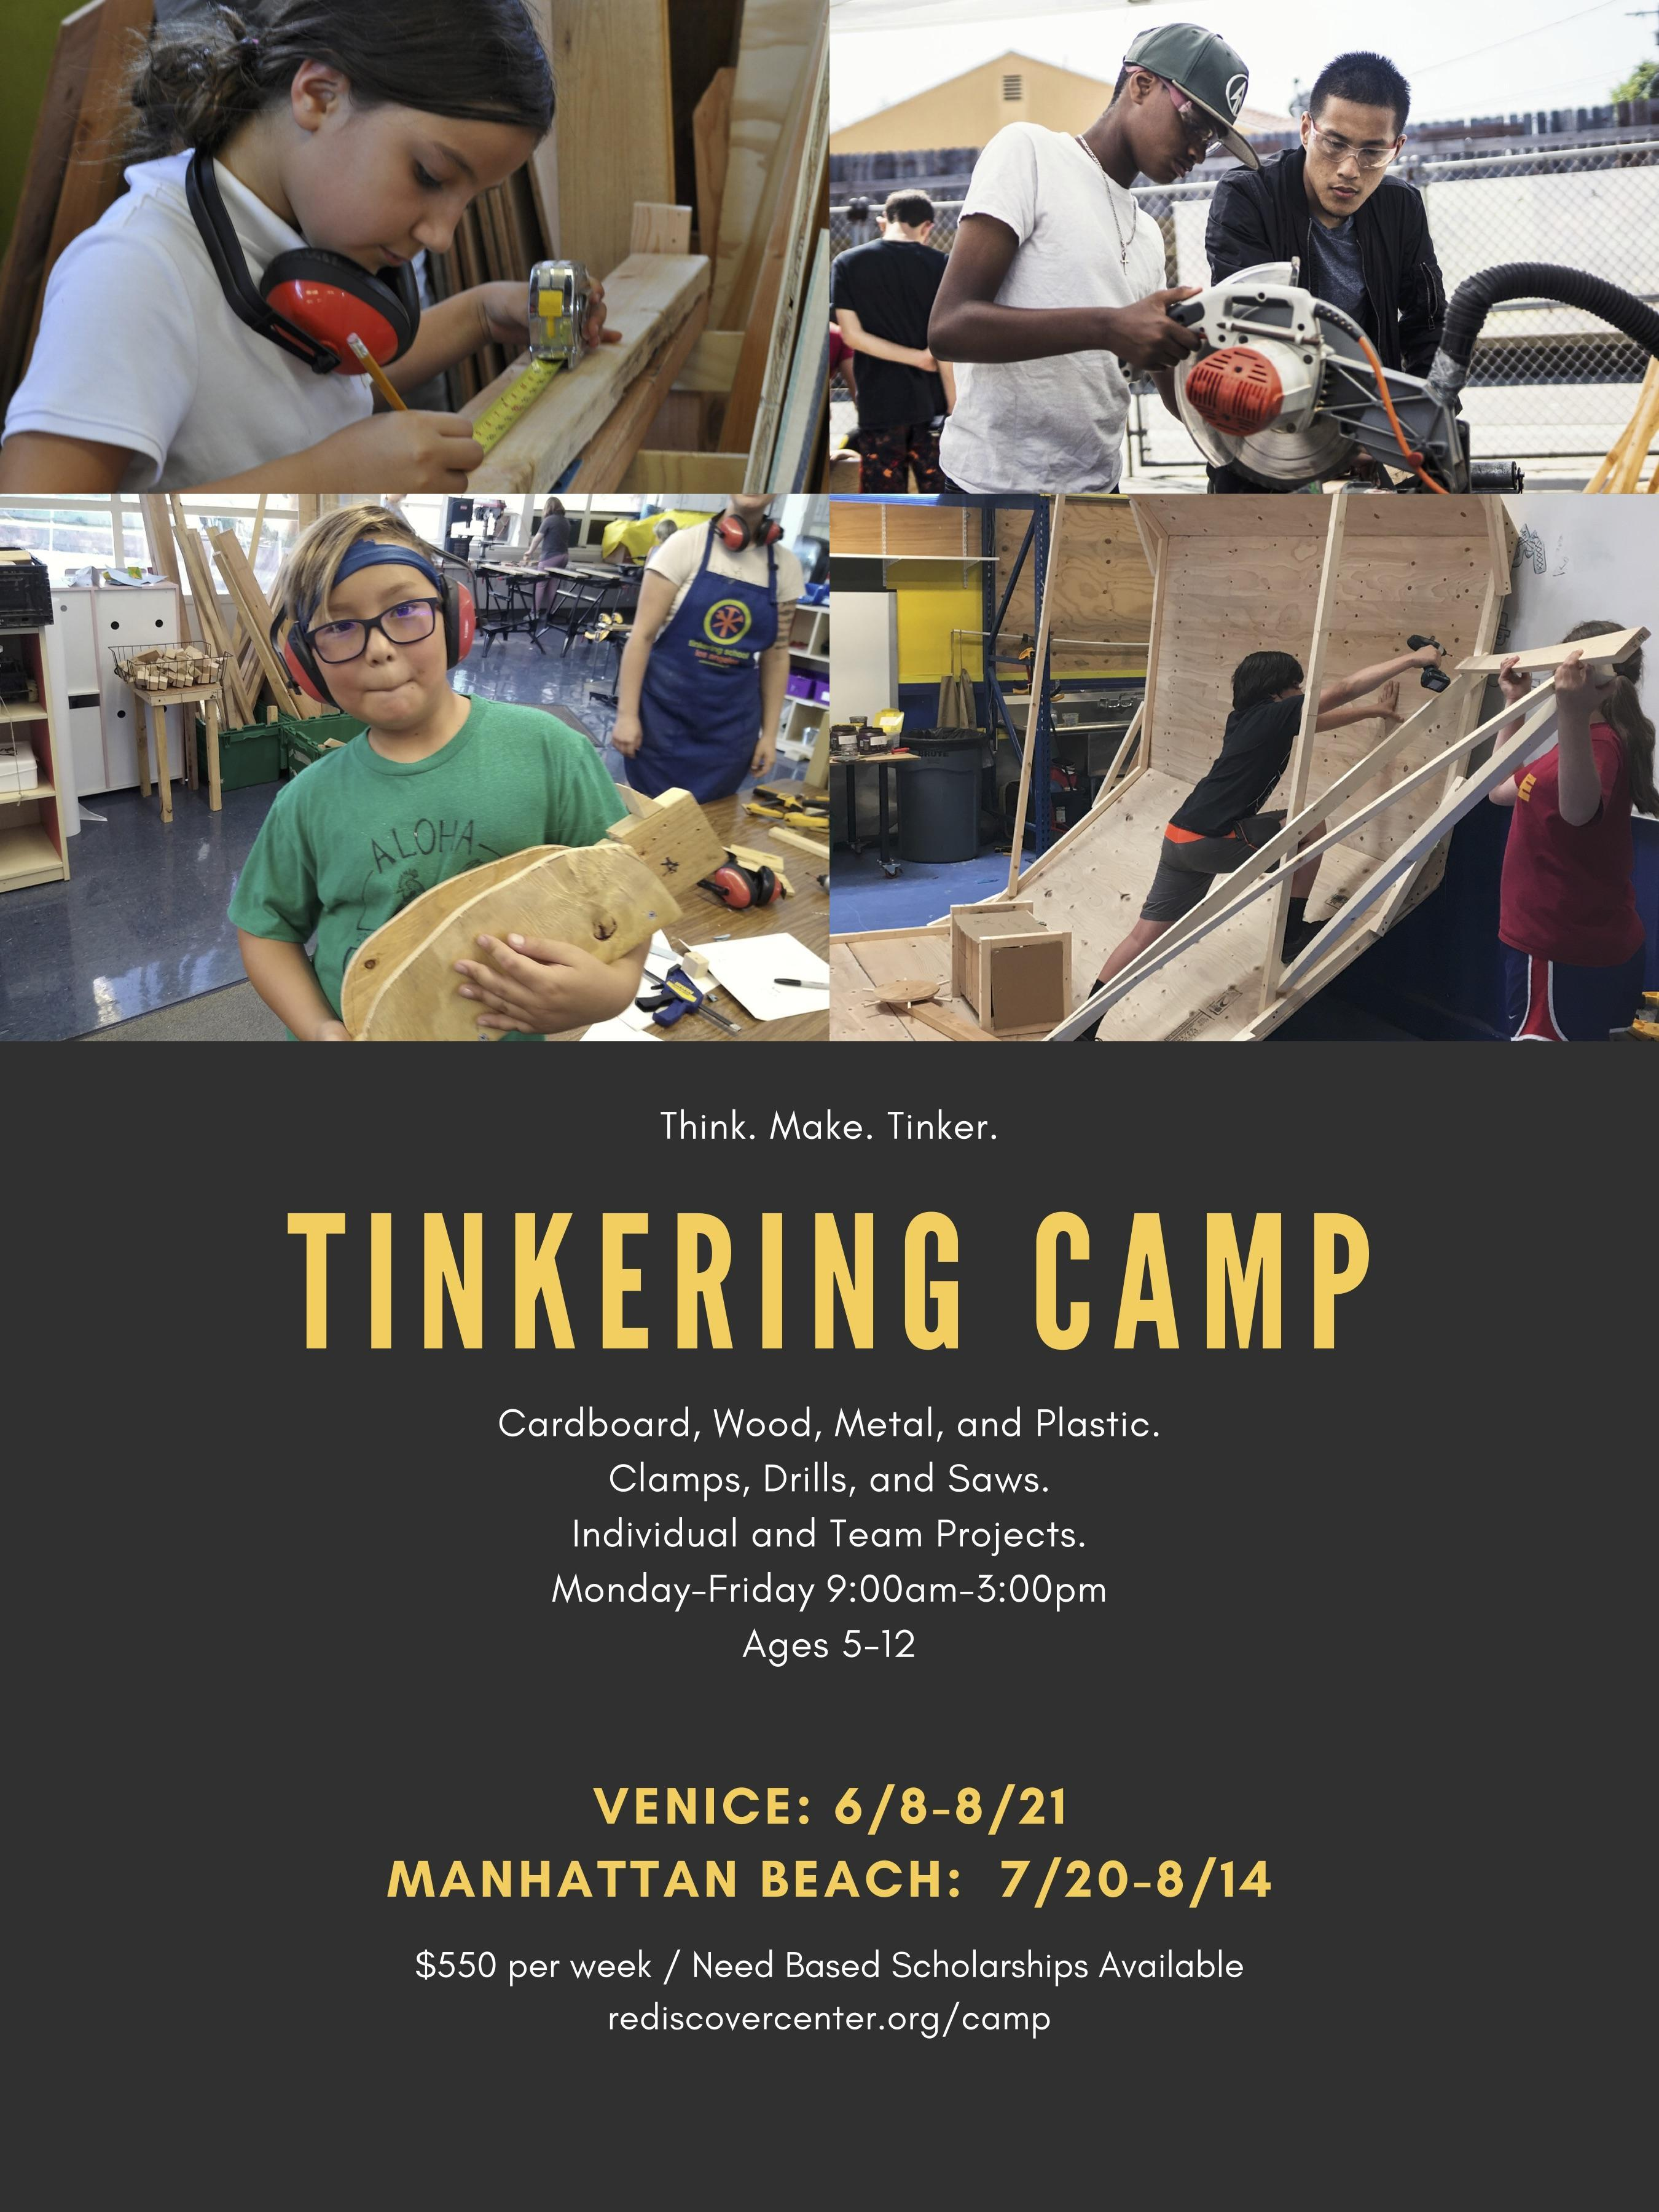 ReDiscover Center Tinkering Camp